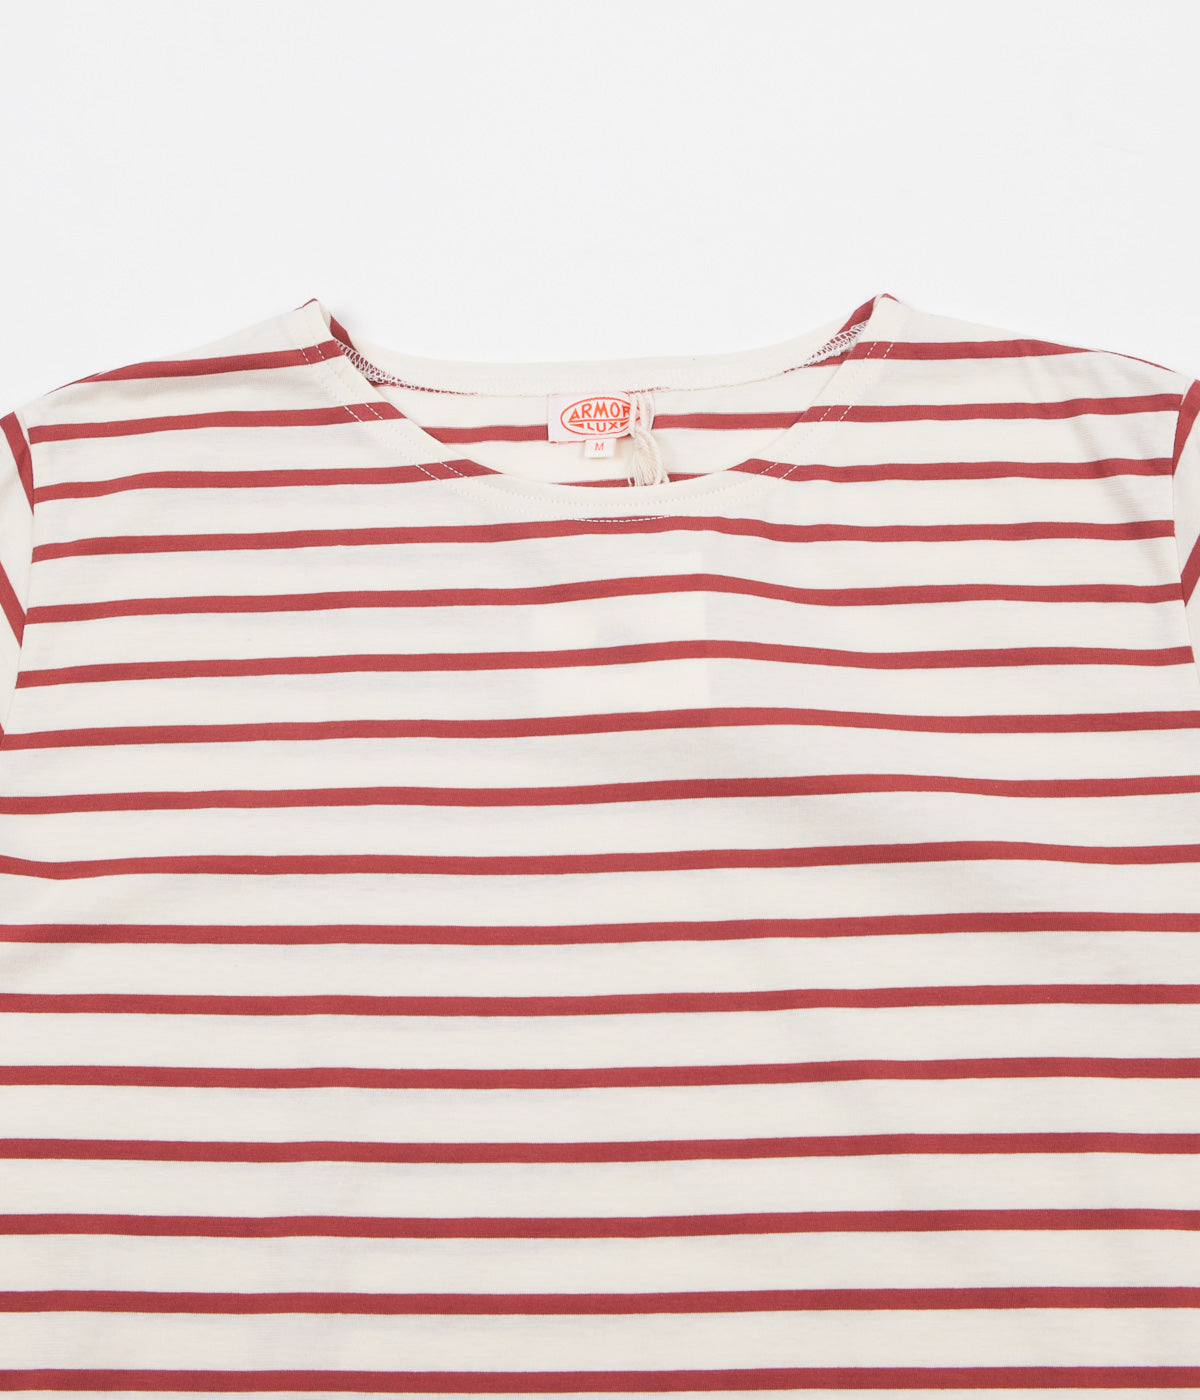 Armor Lux Striped Breton T-Shirt - Nature / Red Manganese